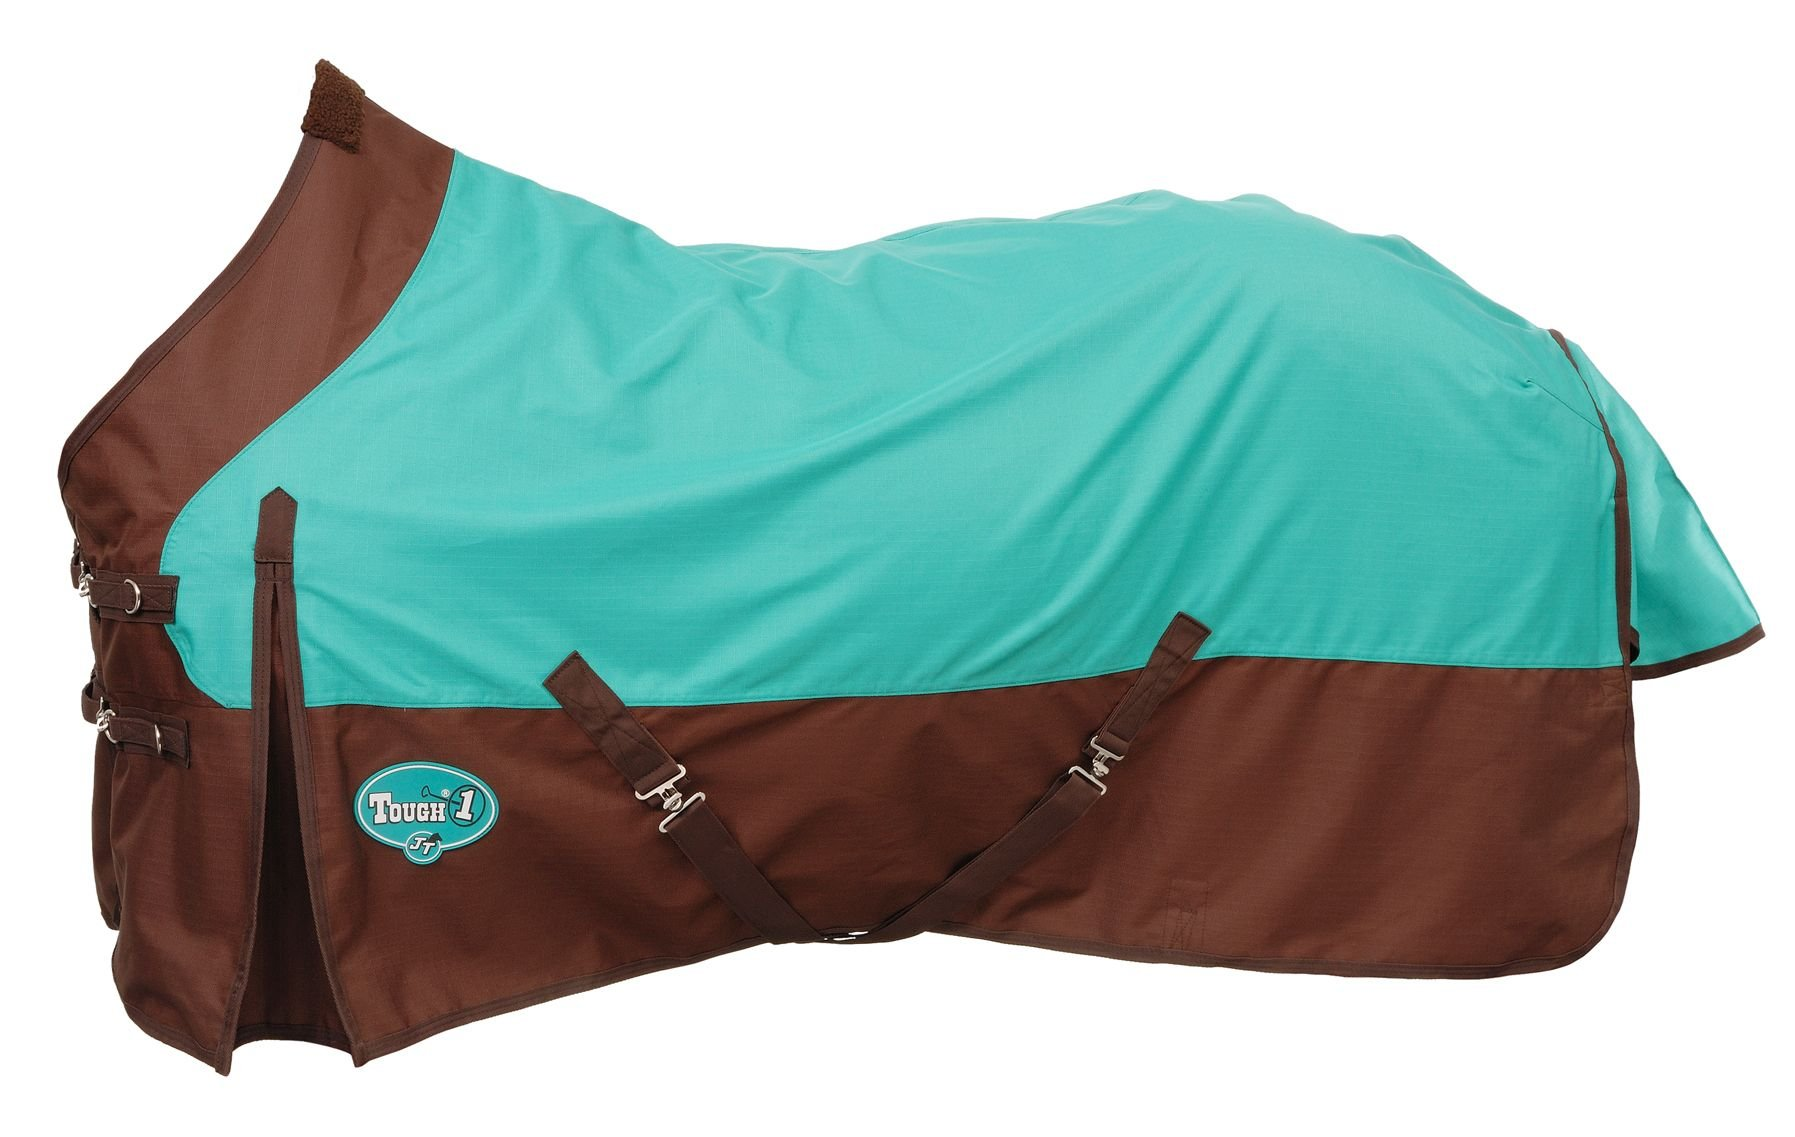 Tough 1 1200 Denier Water Repellent Horse Sheet, Turquoise/Brown, 72-Inch by Tough 1